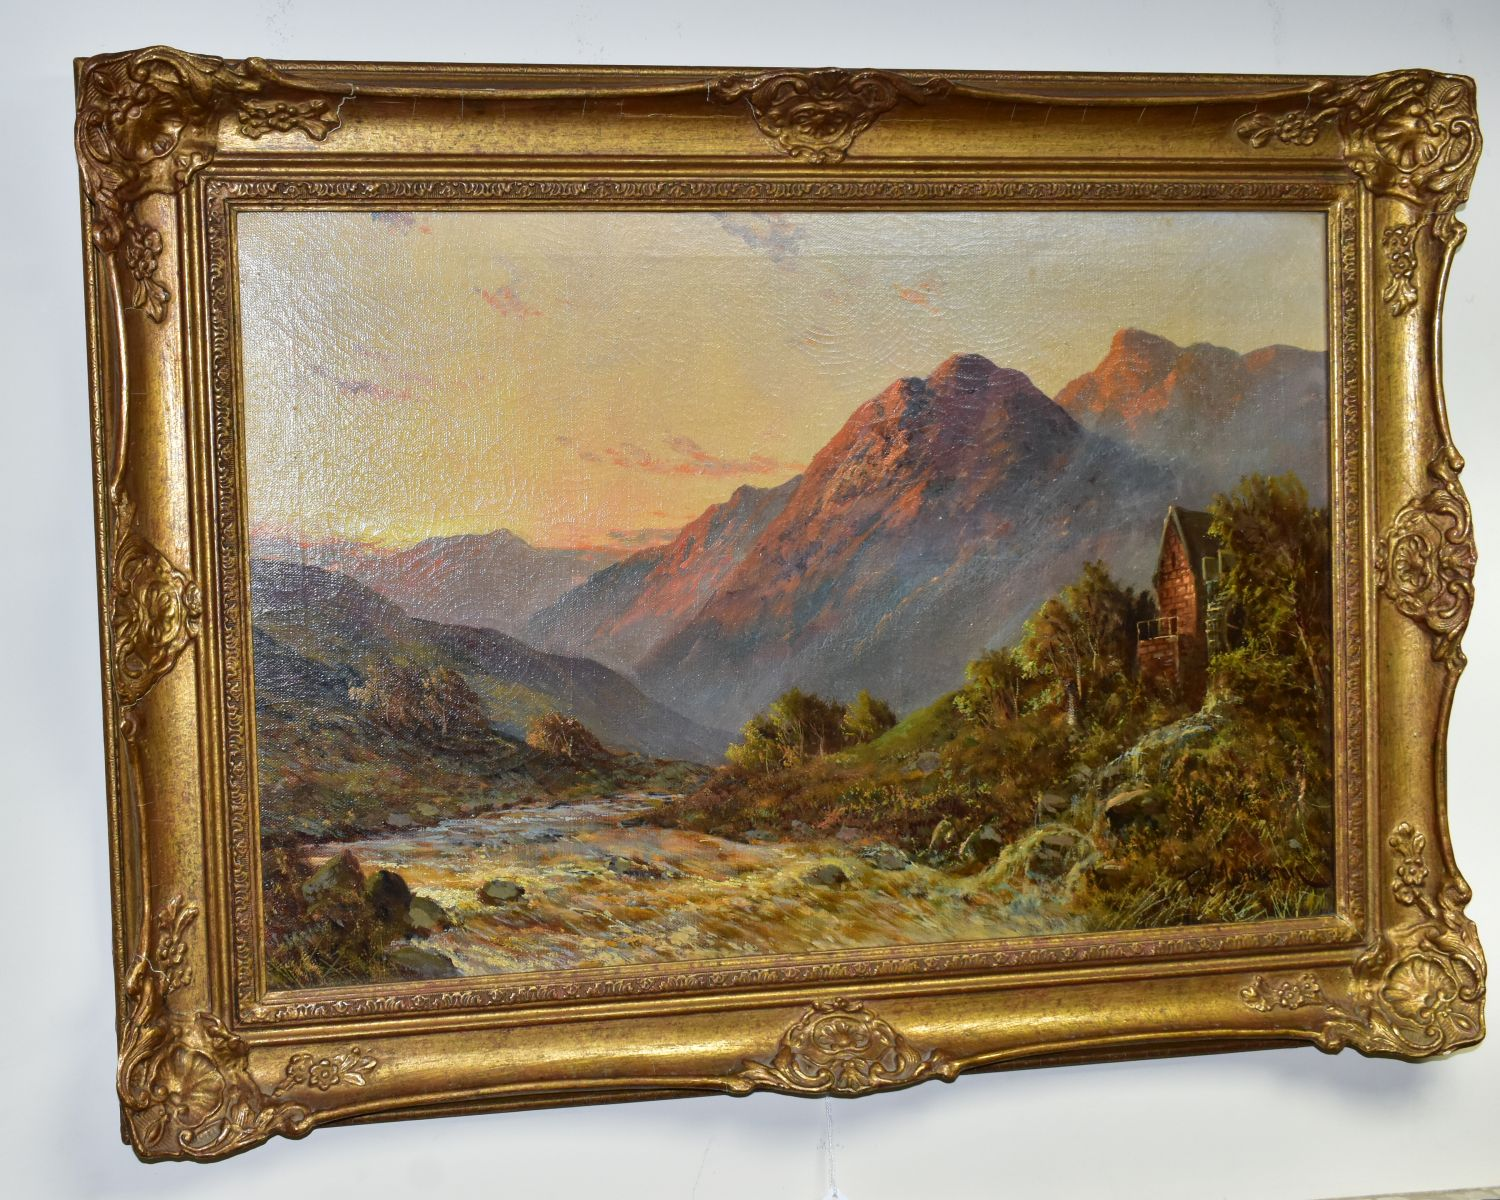 FRANCIS E JAMIESON (1895-1950) 'ALLAN WATERS NR STIRLING' a Scottish mountainous landscape with - Image 4 of 4